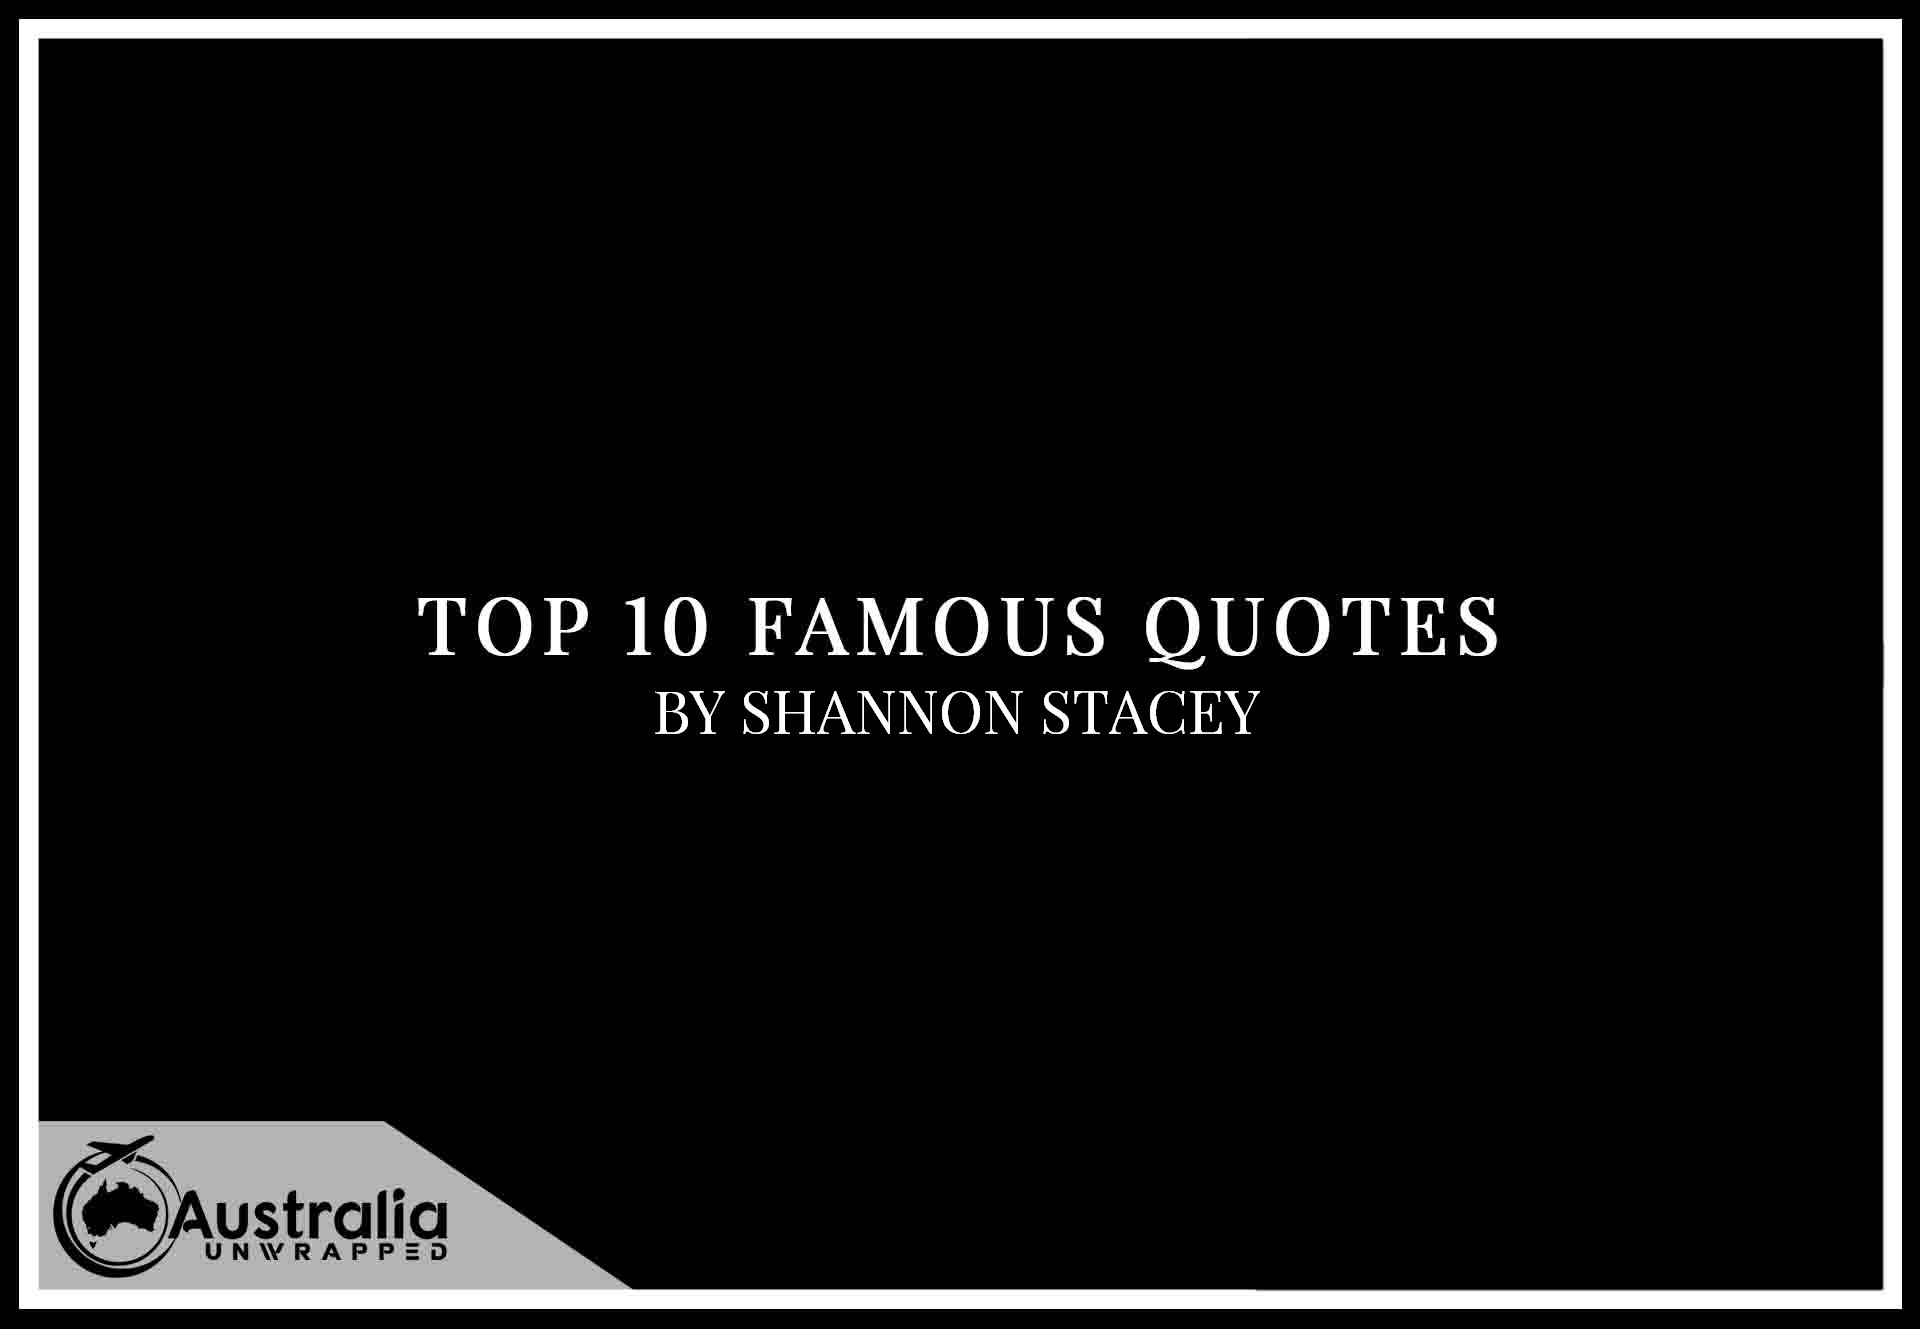 Top 10 Famous Quotes by Author Shannon Stacey